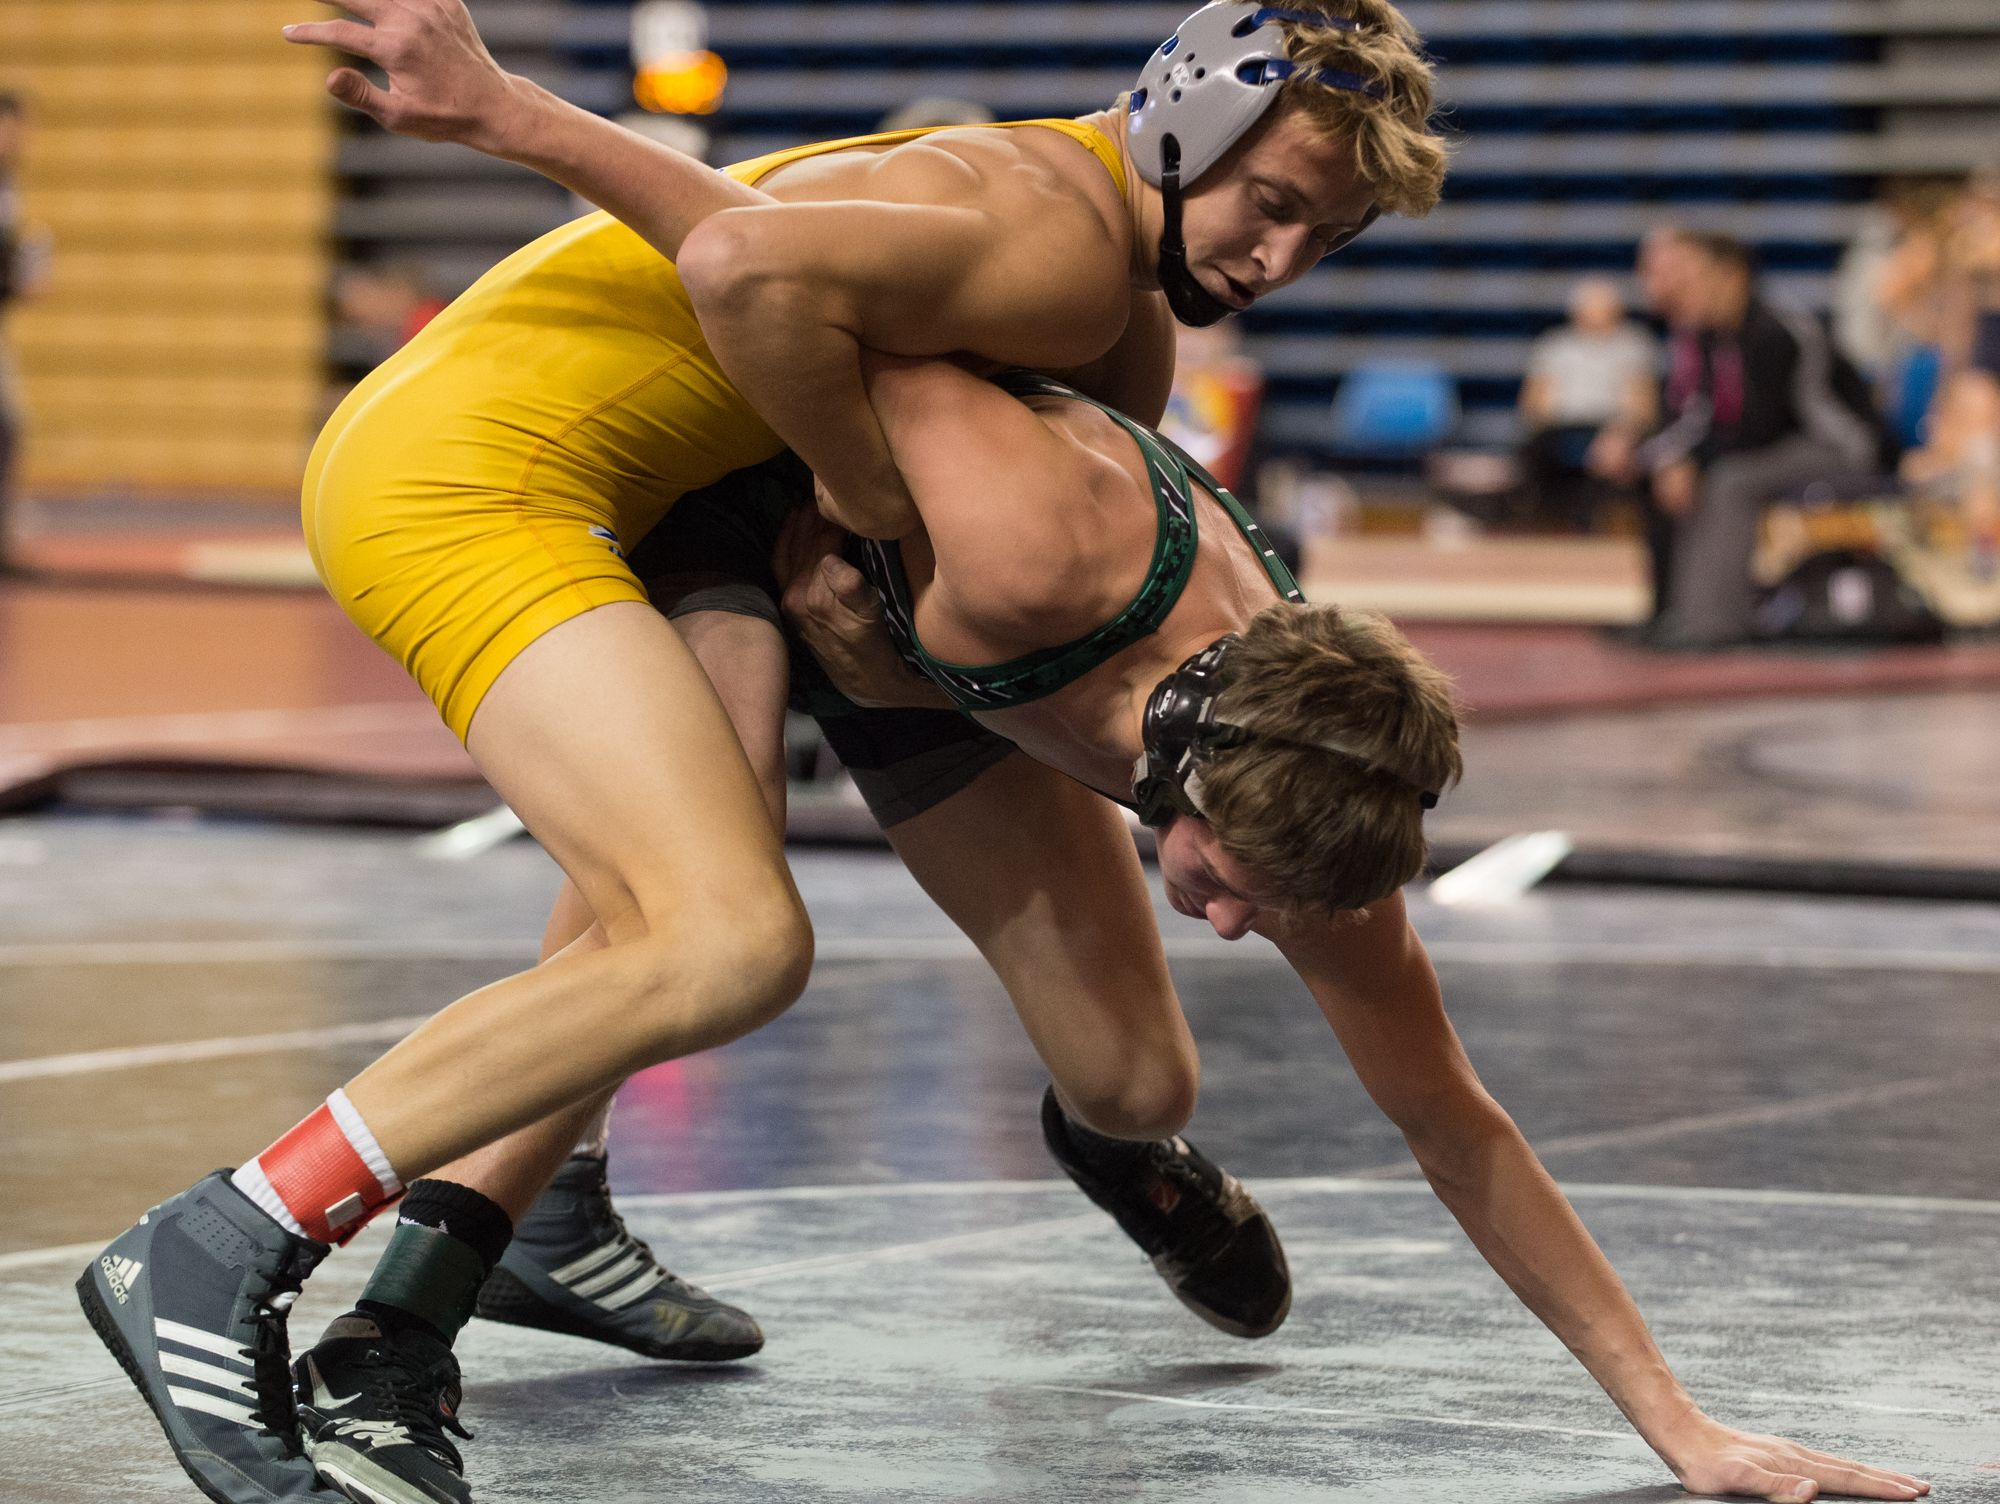 Caesar Rodney's Cameron Hayes, left, grabs the arm of Camden Catholic's Lucas Revano in the 120 pound match during the Beast of the East wrestling tournament at the University of Delaware on Saturday.